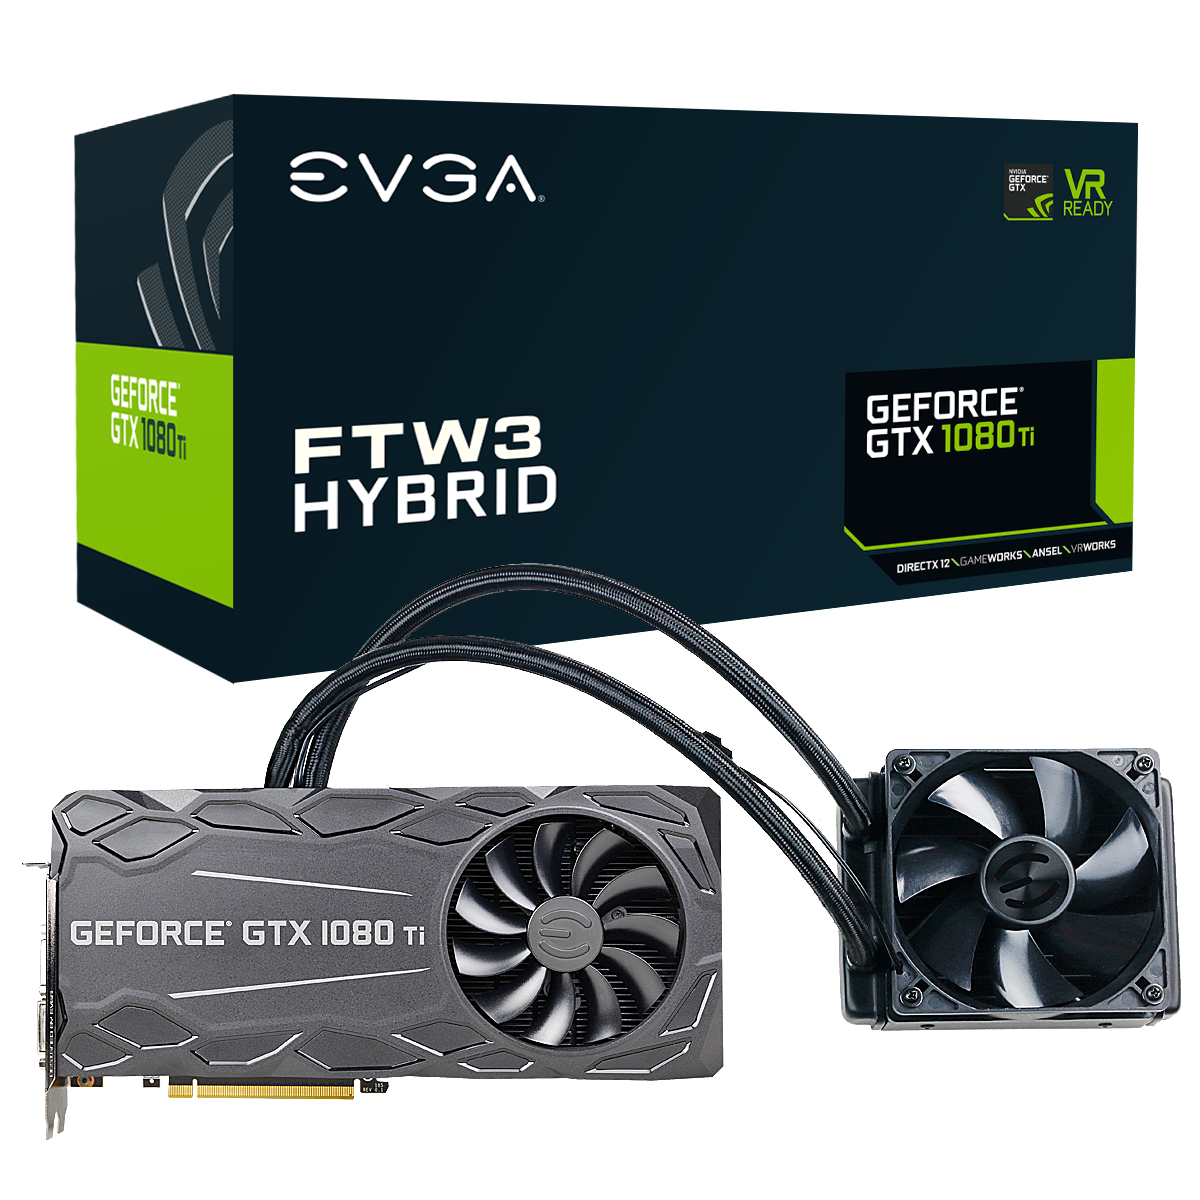 GeForce GTX 1080 Ti FTW3 HYBRID GAMING Graphic Card